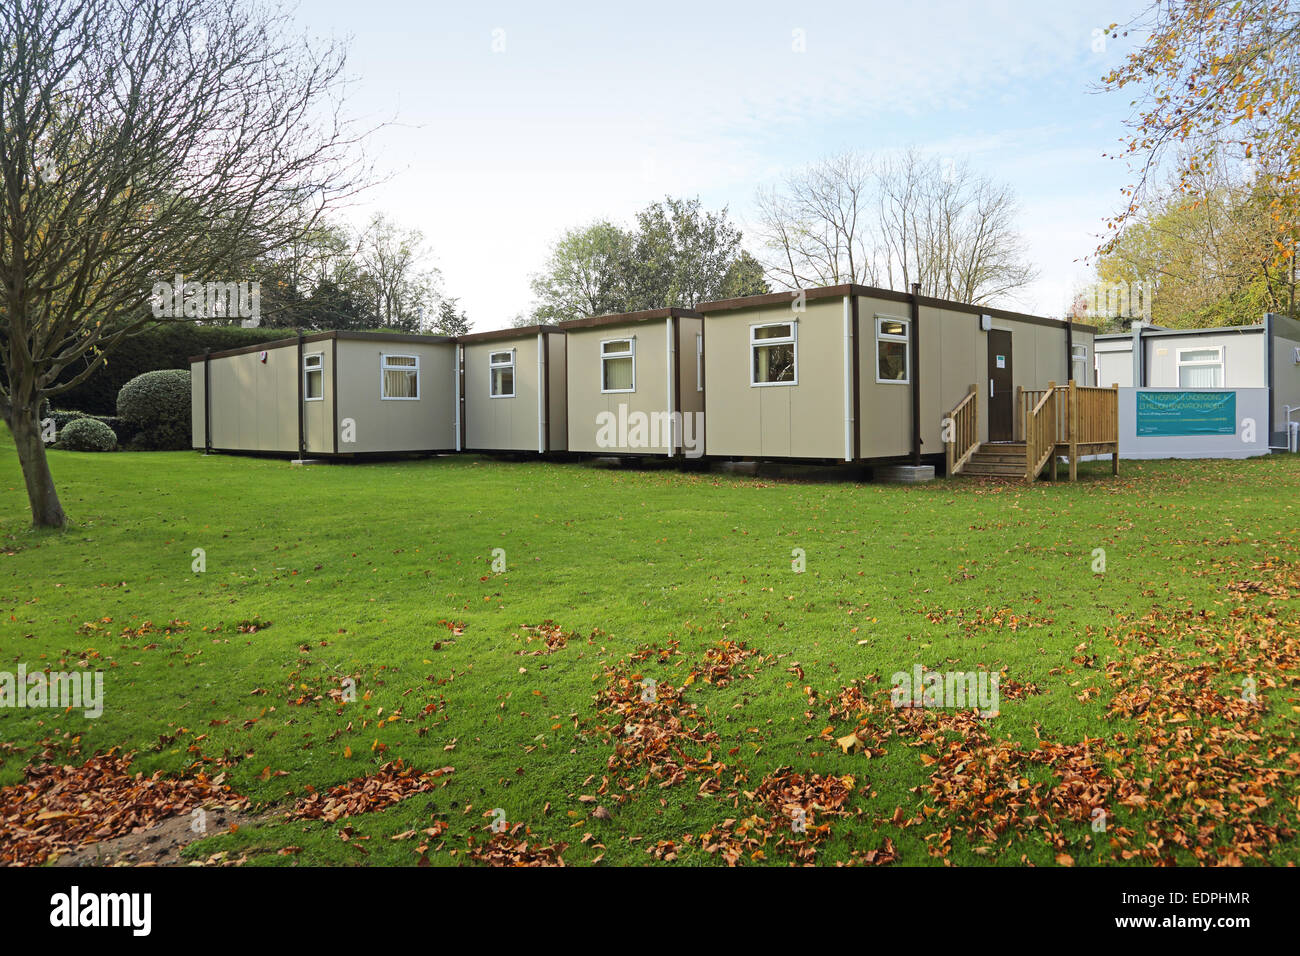 Temporary hospital outpatients accommodation constructed from modular Portakabin style units. - Stock Image